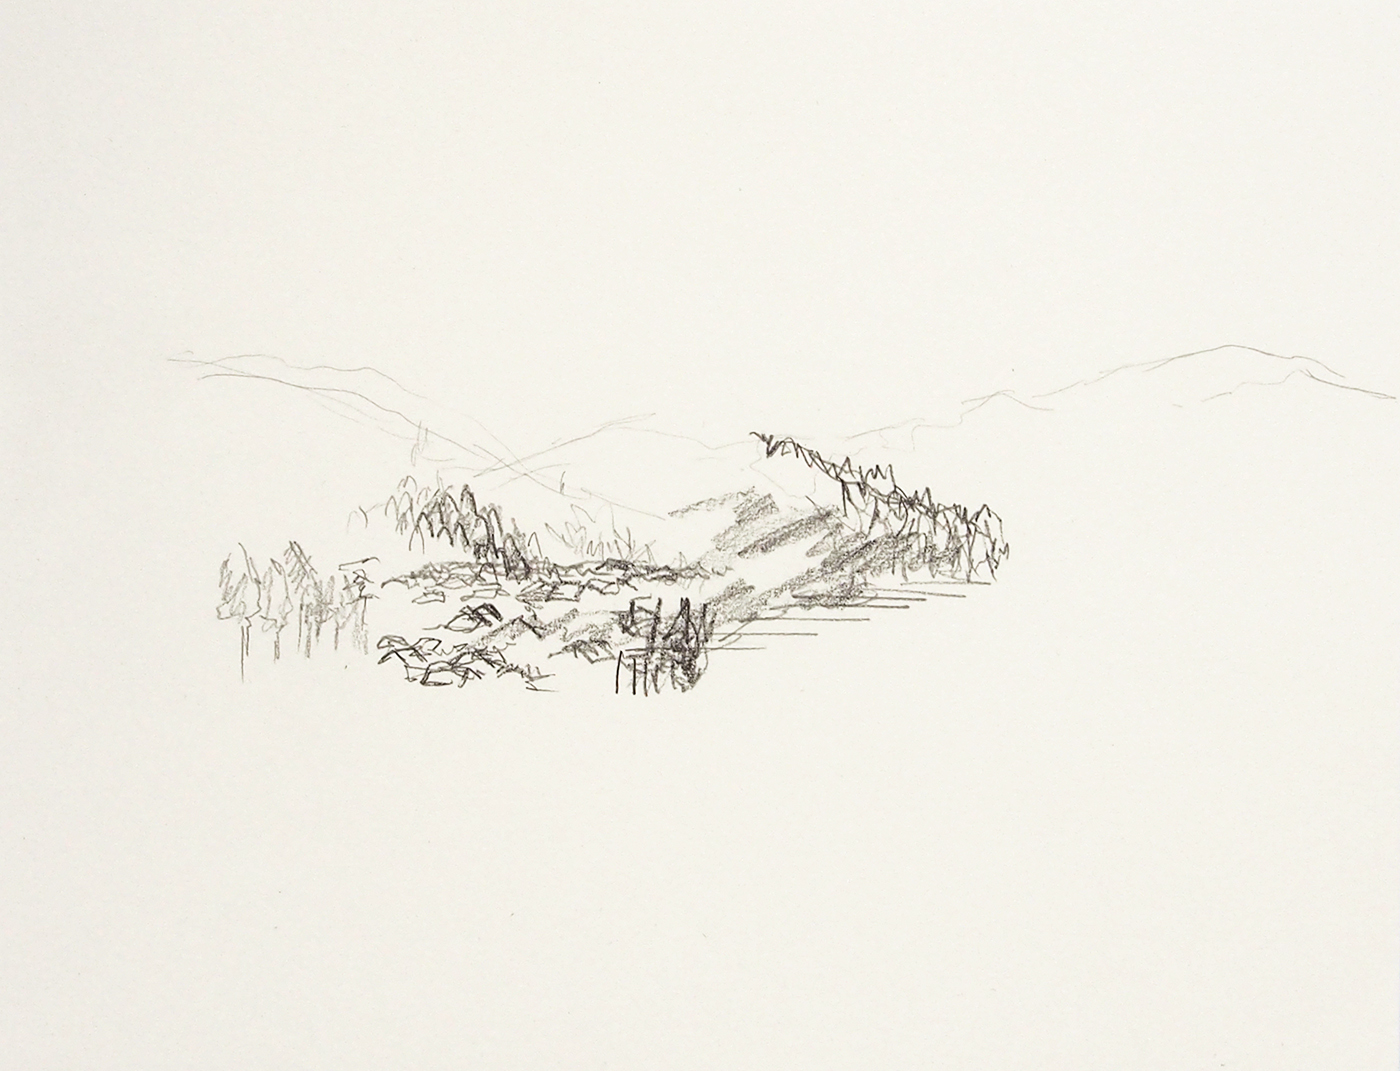 Hokuriku 1   graphite on paper  2016